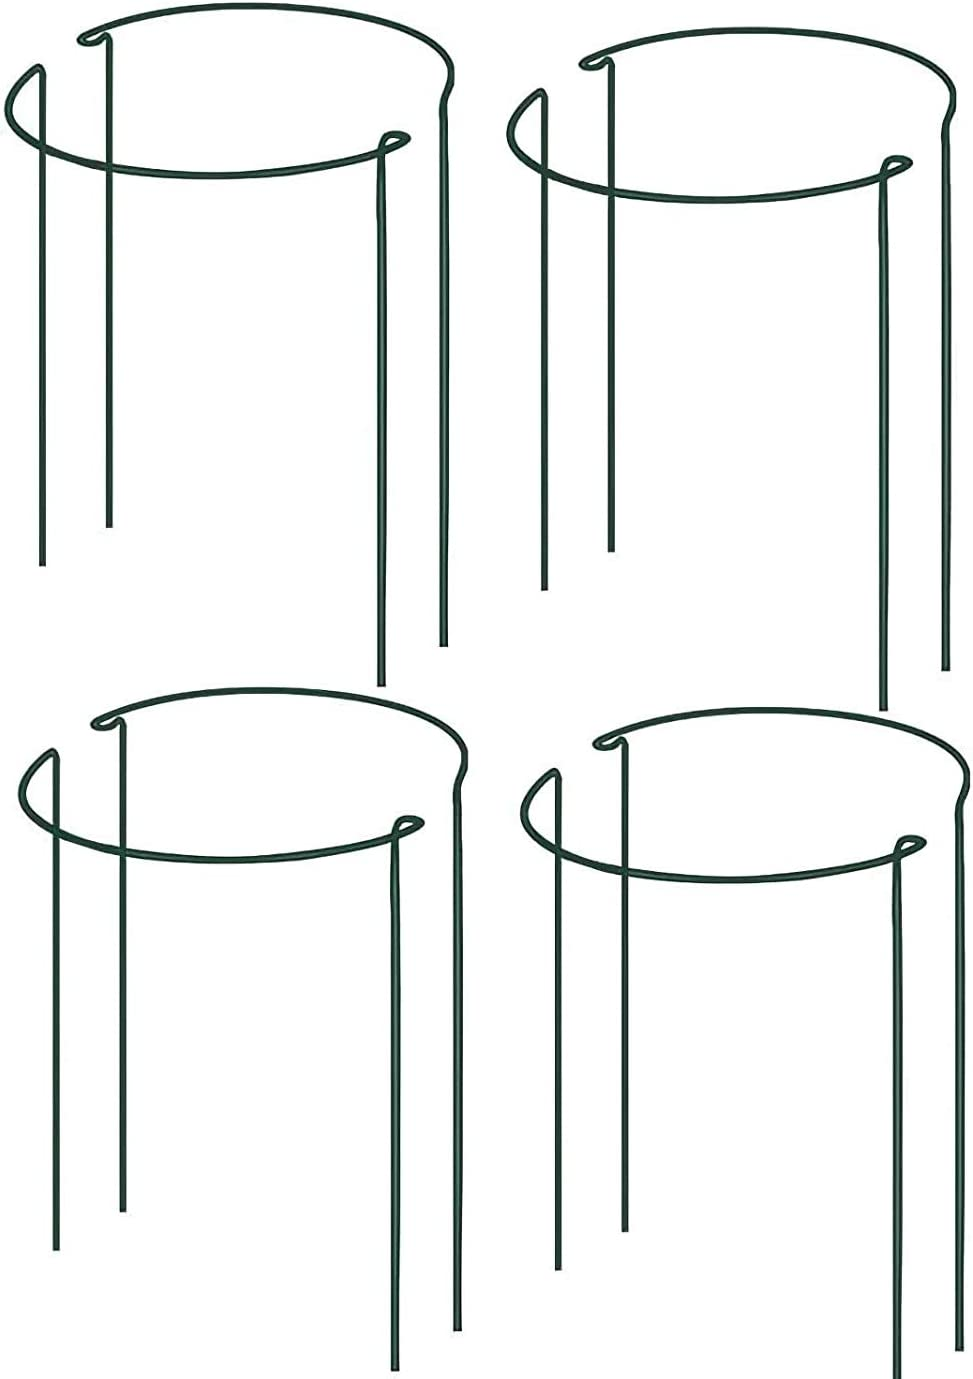 IPSXP Plant Support Stake, 8-Pack Half Round Metal Garden Plant Supports, Green Garden Plant Support Ring, Garden Border Supports, Plant Support Ring Cage for Tomato, Roses, Hydrangea, Flowers Vine